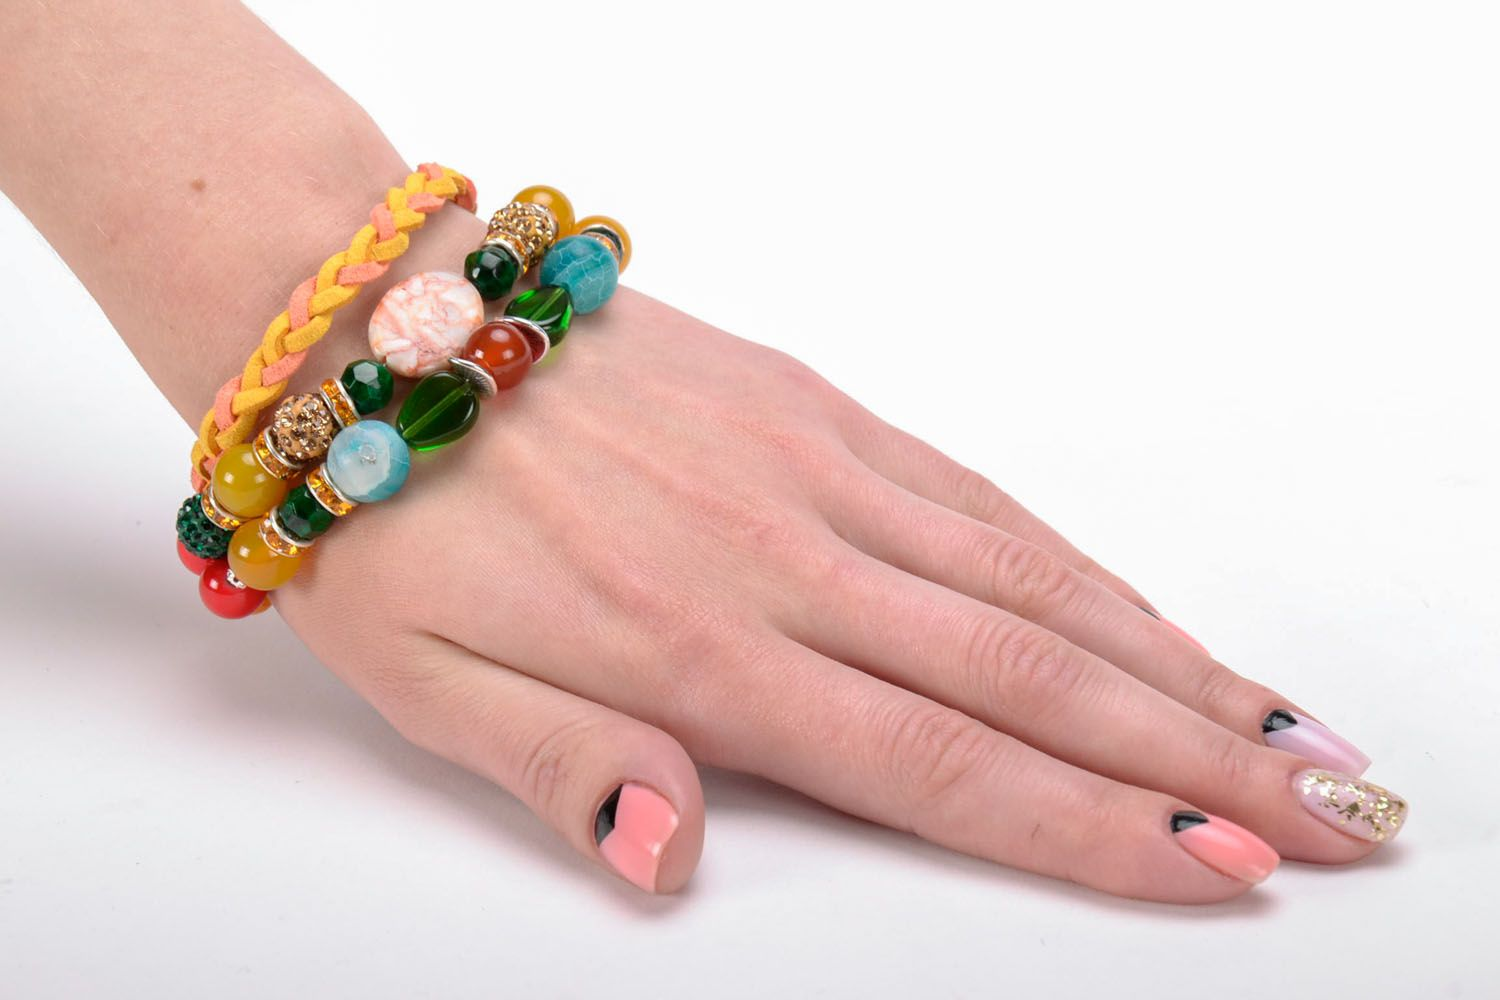 Bracelet made of natural stones photo 5